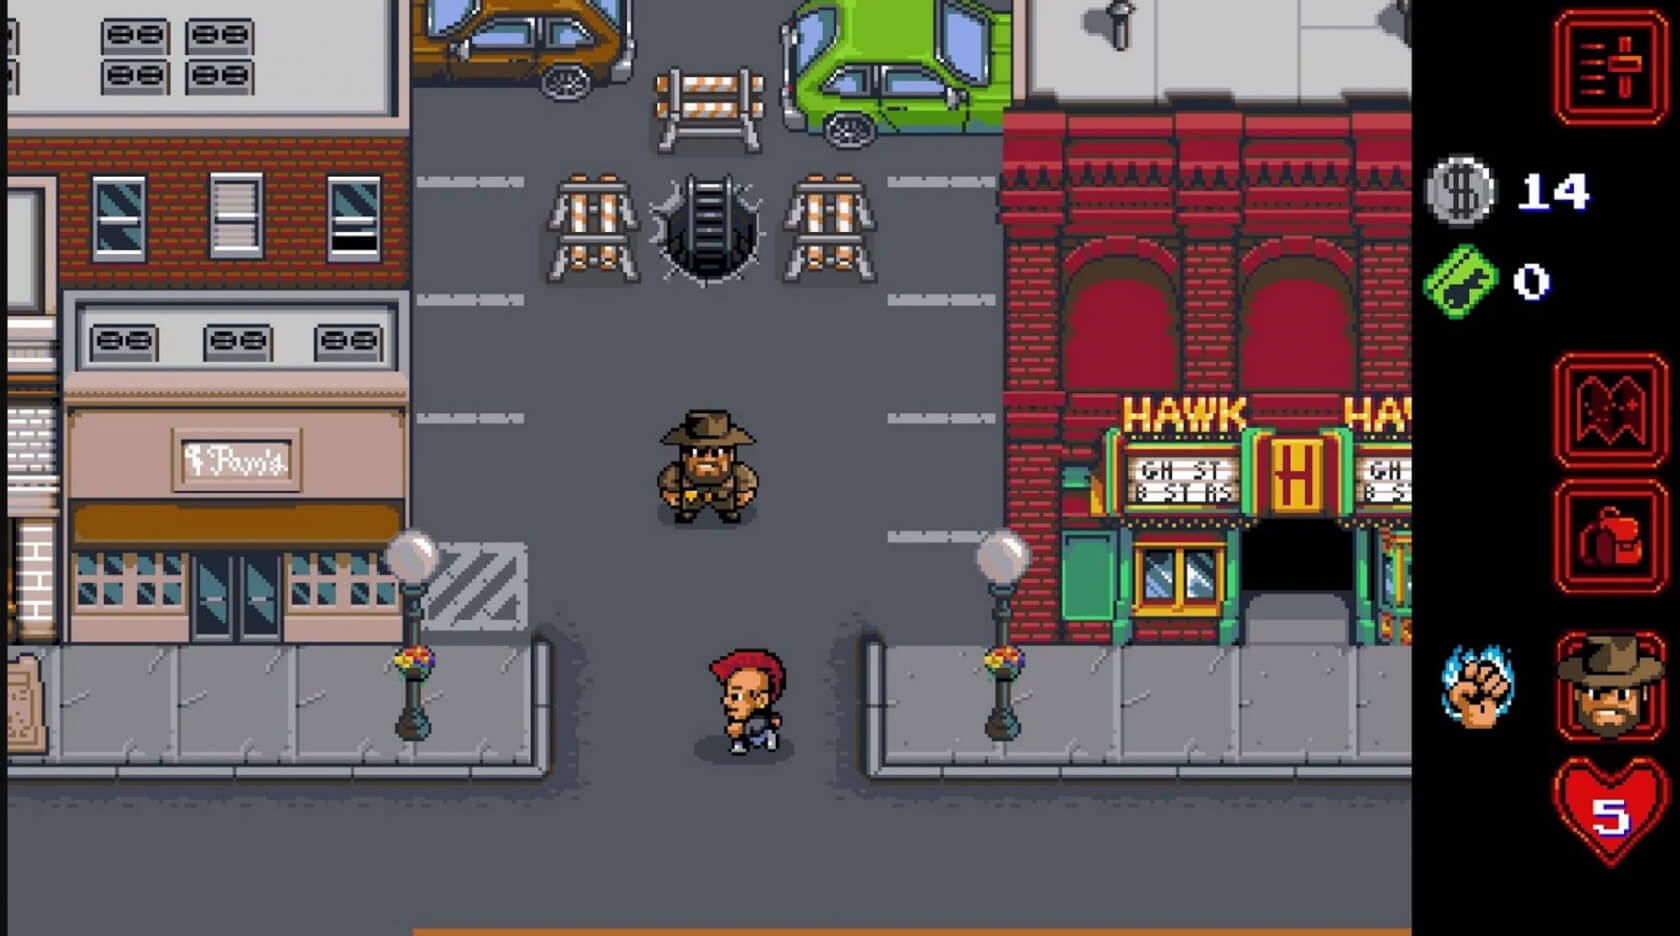 The retro-style Stranger Things: The Game arrives on Android/iOS for free